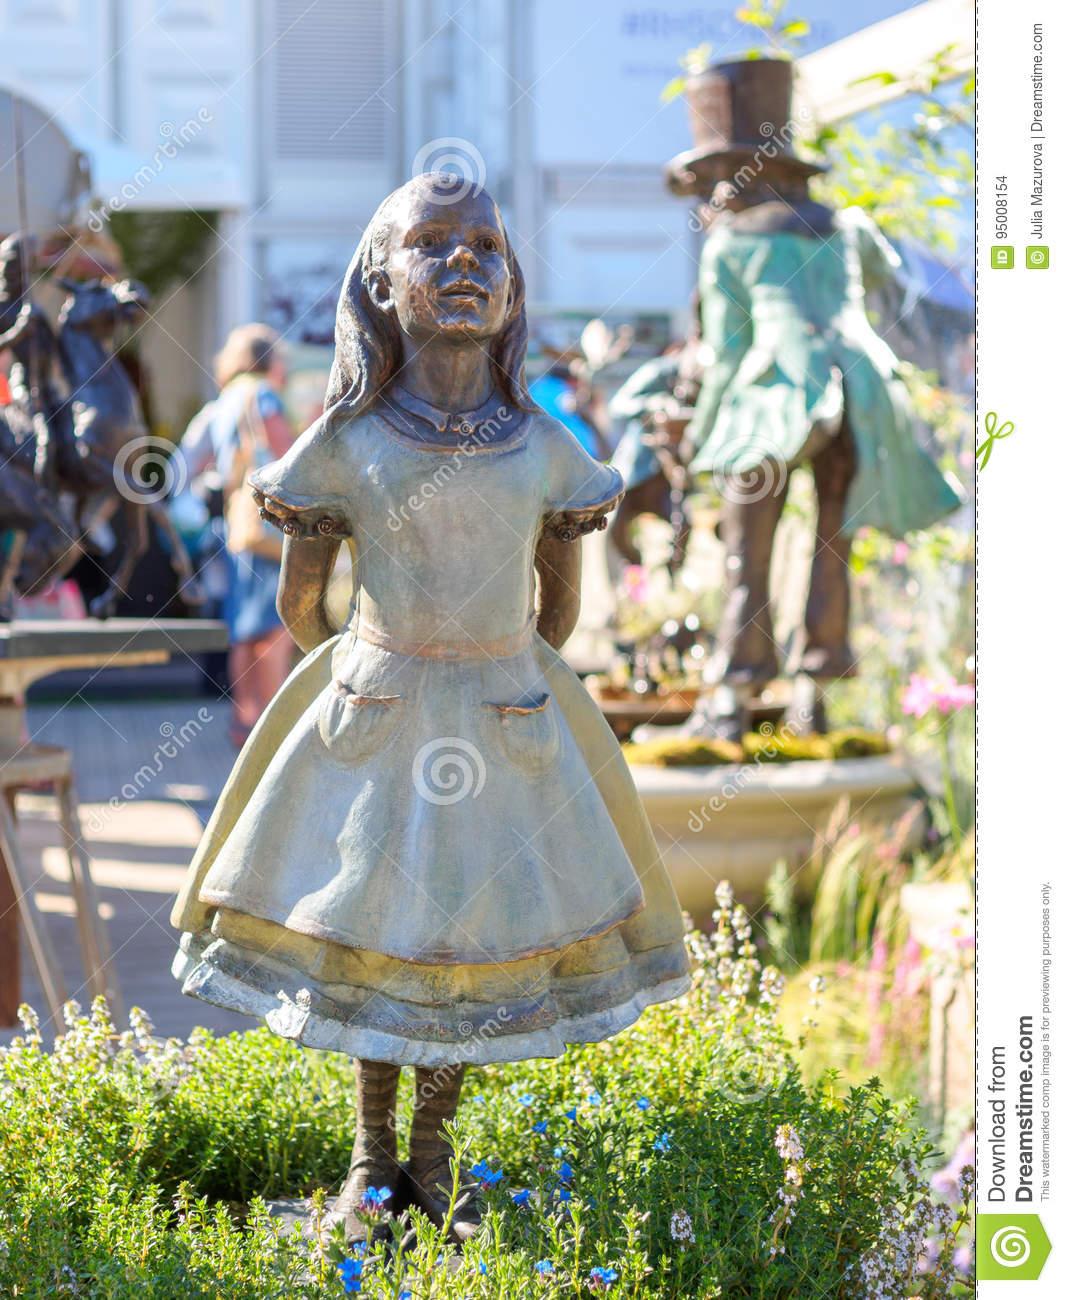 London uk may 25 2017 rhs chelsea flower show 2017 - Chicago flower and garden show 2017 ...